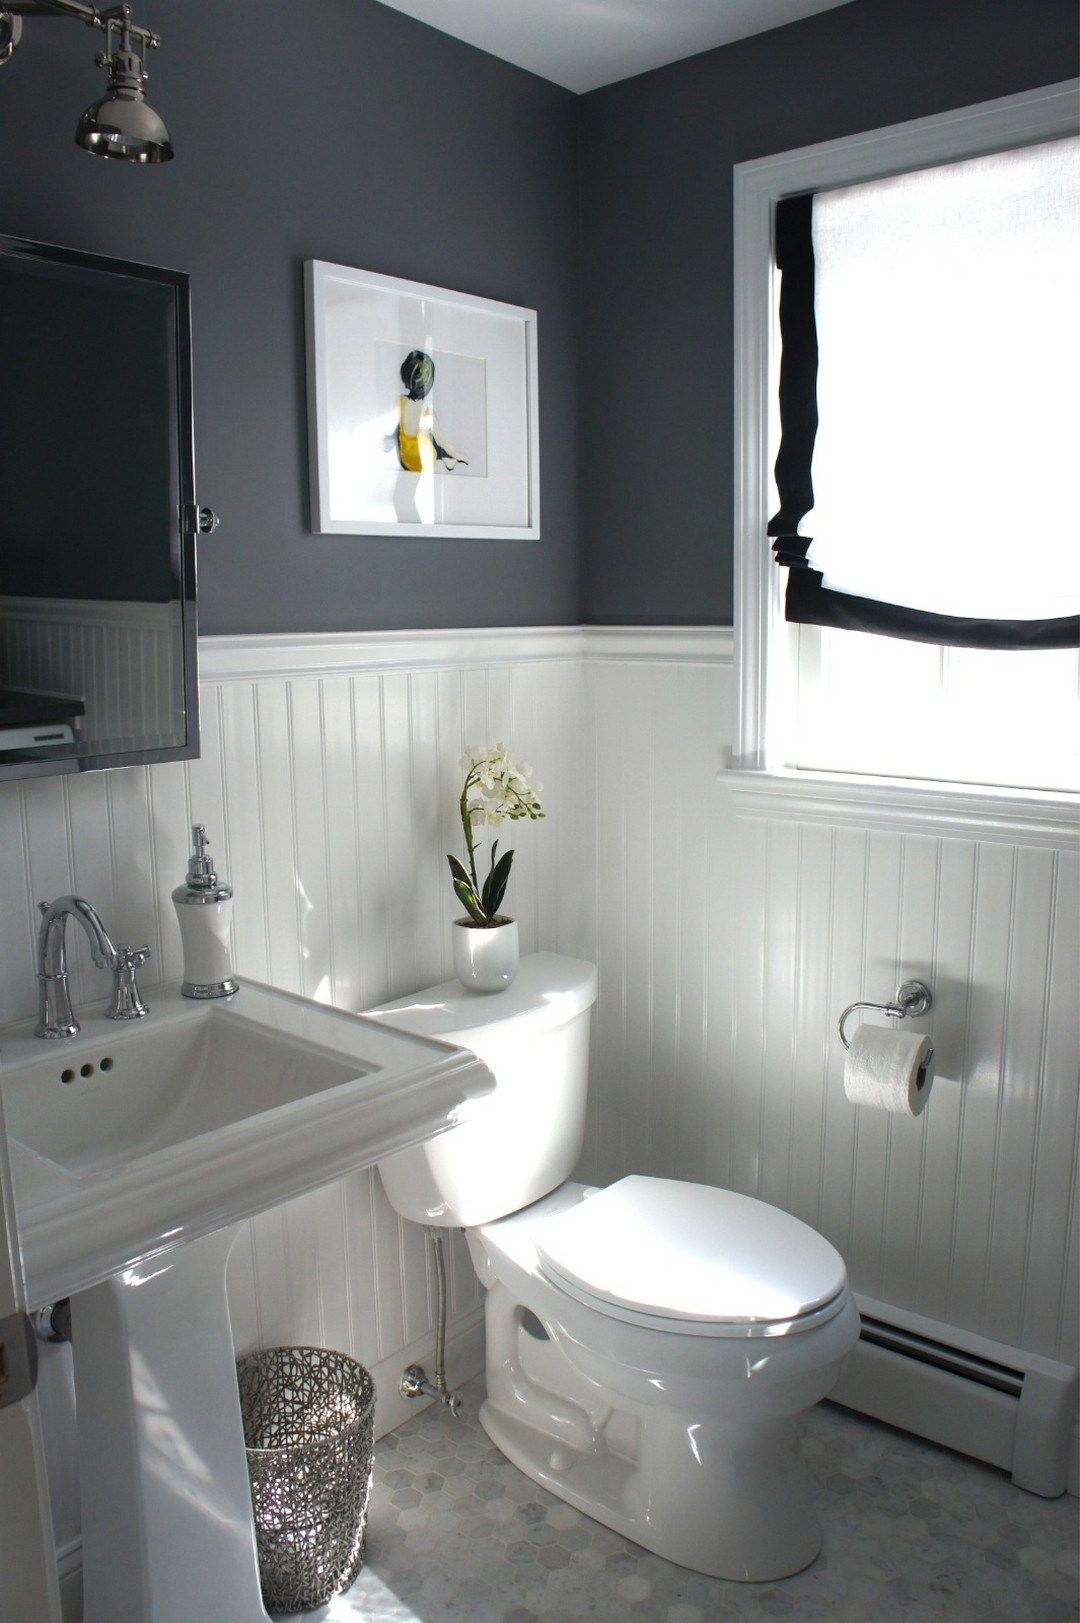 99 Small Master Bathroom Makeover Ideas On A Budget 48 My Board Pinterest Master